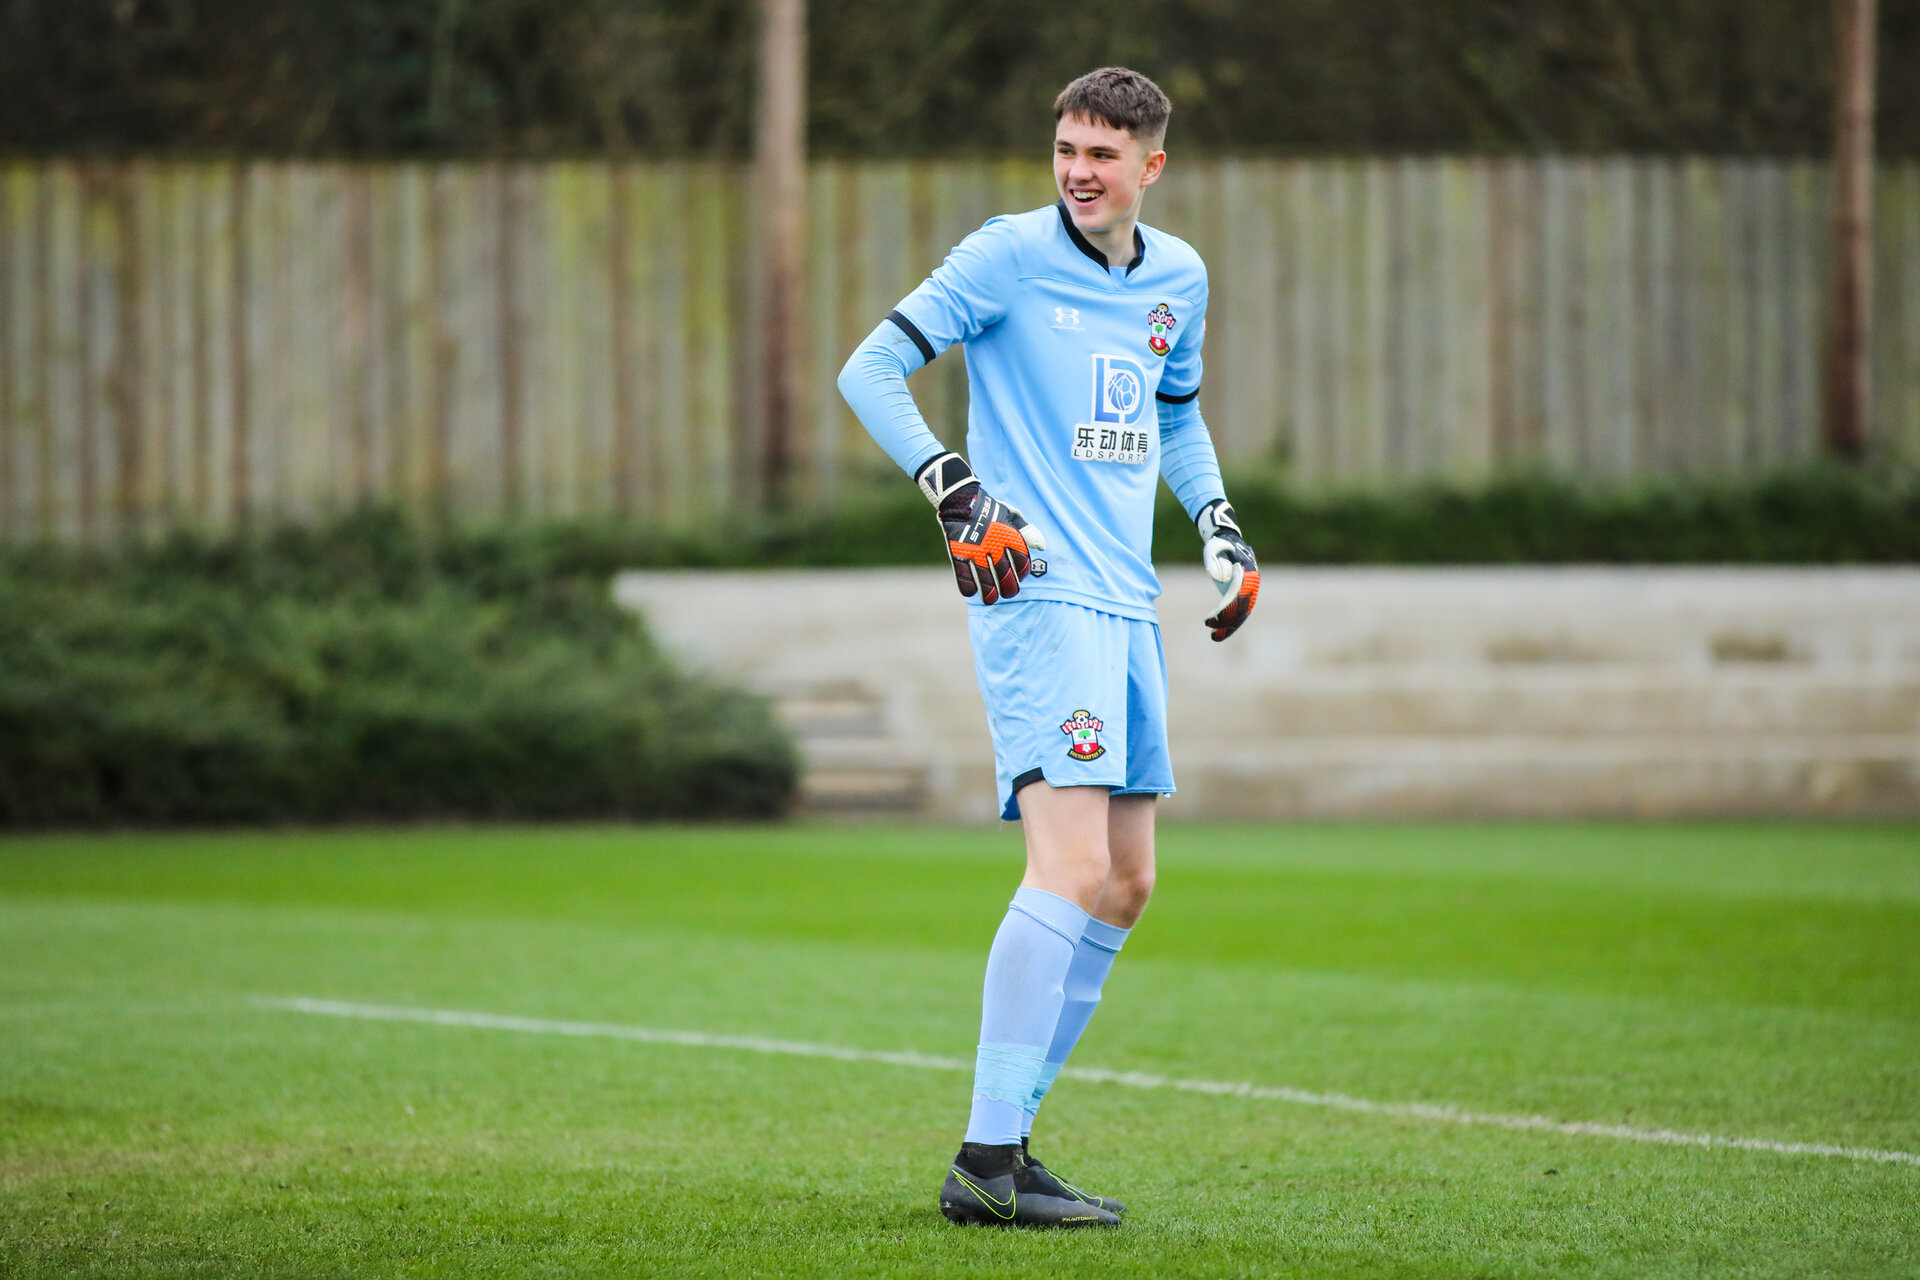 SOUTHAMPTON, ENGLAND - JANUARY 23: Oliver Wright of Southampton FC during the Barclays Under 18 Premier League match between Southampton FC and Swansea City at the Staplewood Campus on January 23, 2020 in Southampton, England